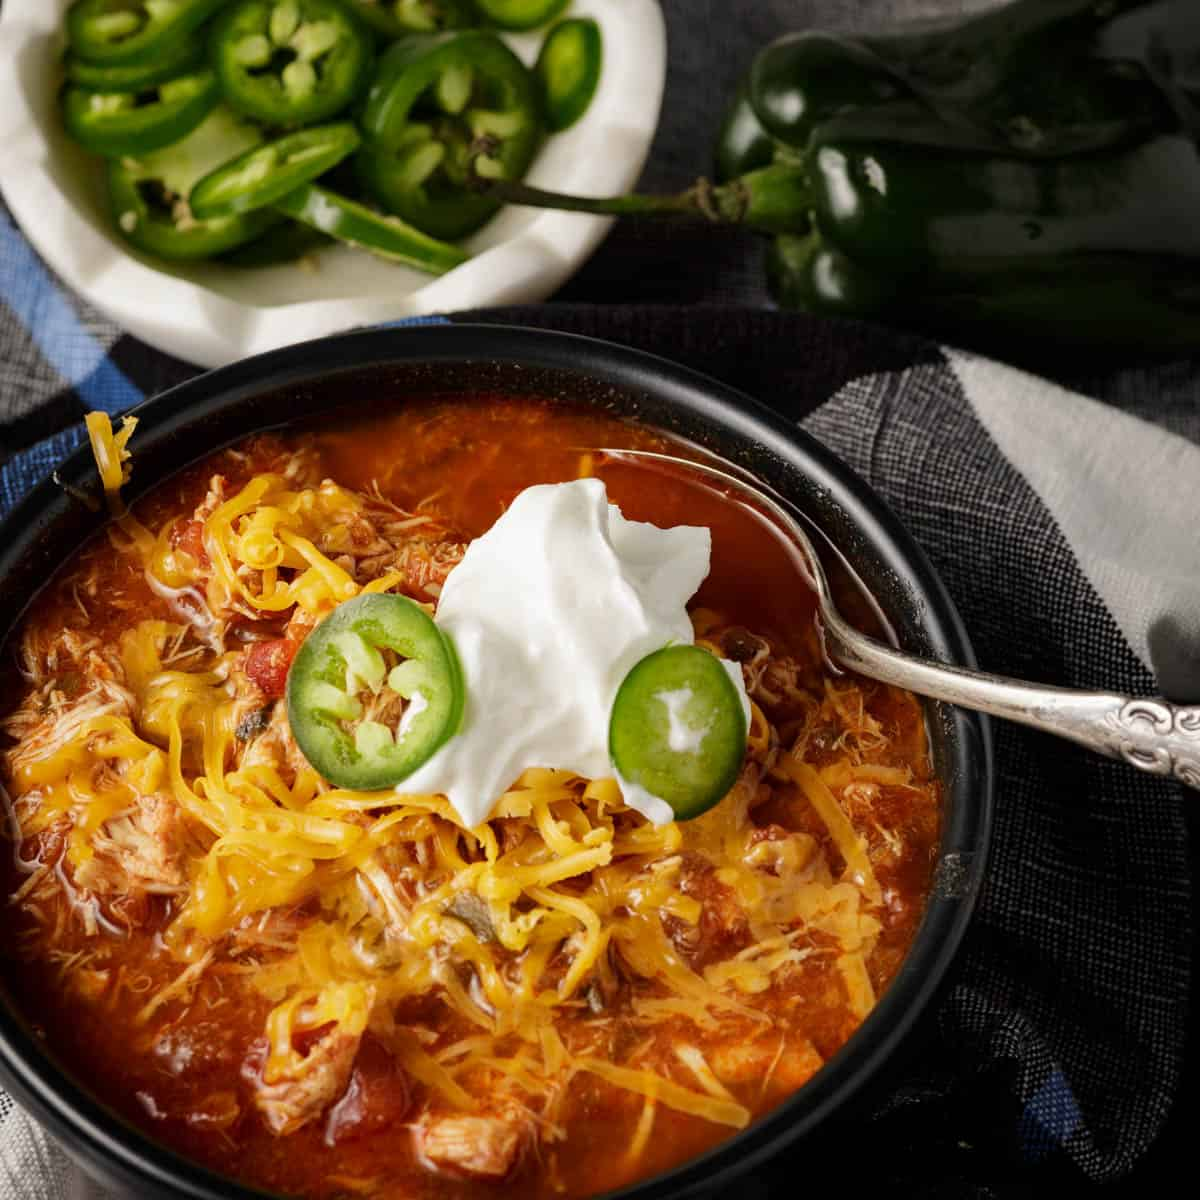 A bowl of easy slow cooker chili with sliced jalapenos